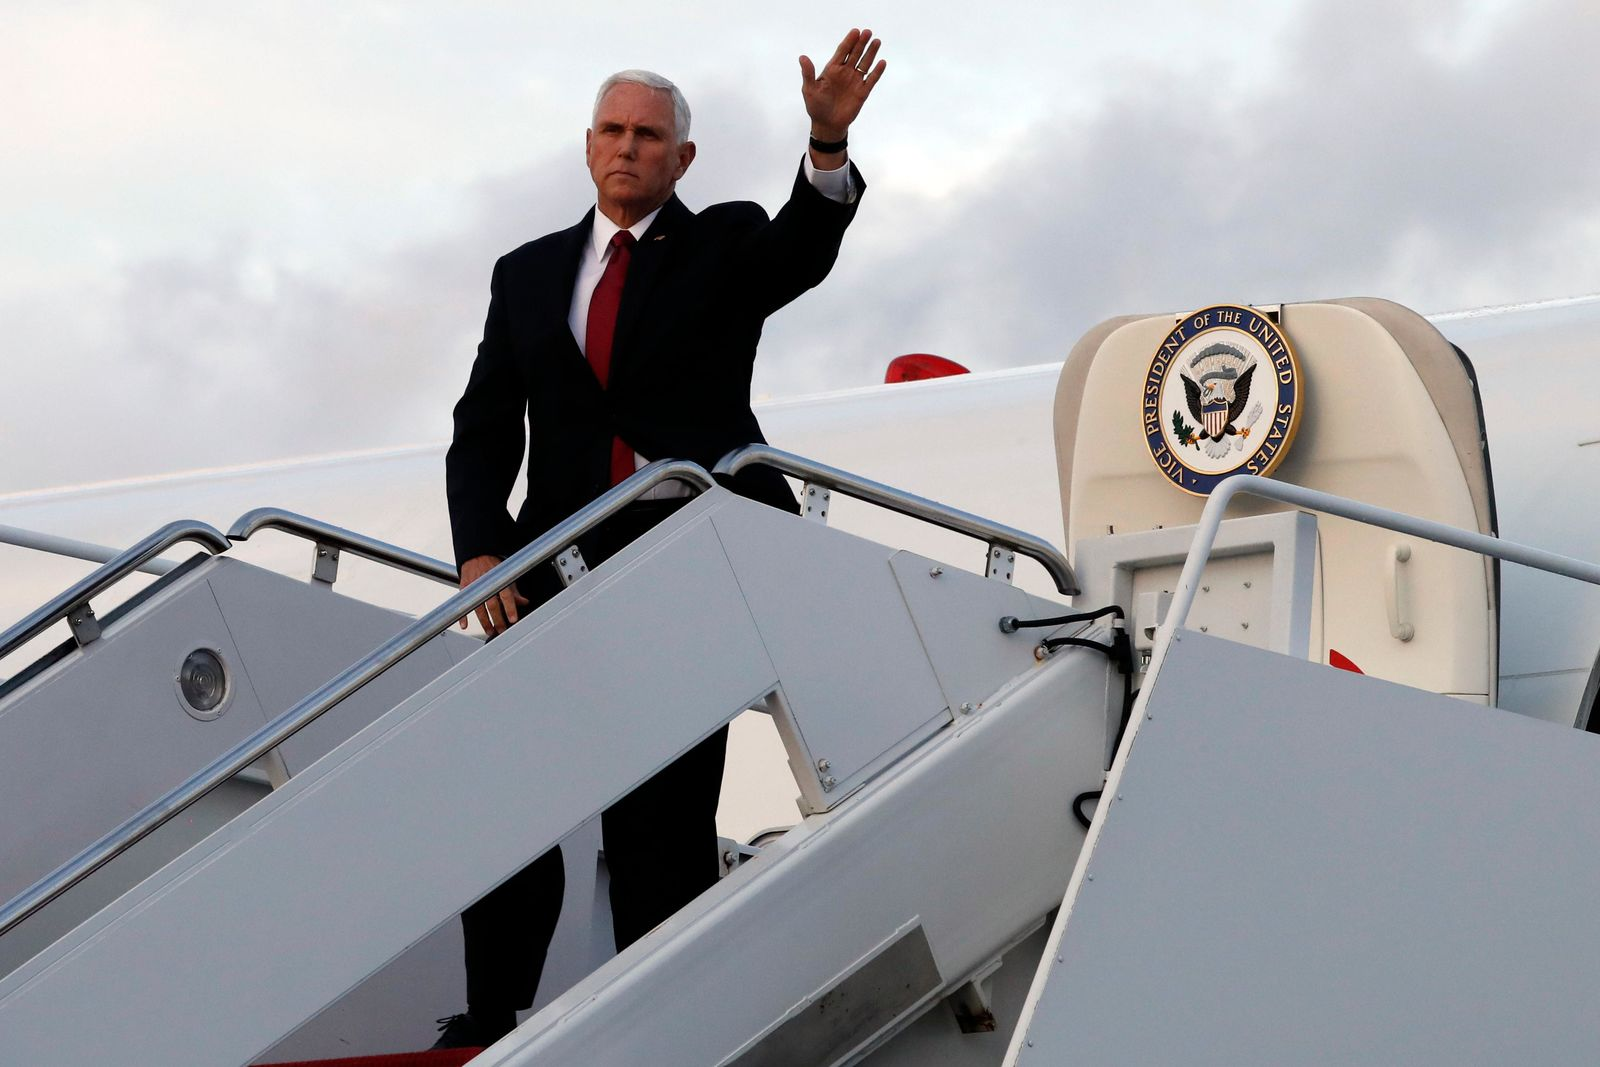 Vice President Mike Pence waves as he board Air Force Two at Andrews Air Force Base, Md., Wednesday, Oct. 16, 2019, en route to Turkey. (AP Photo/Jacquelyn Martin)